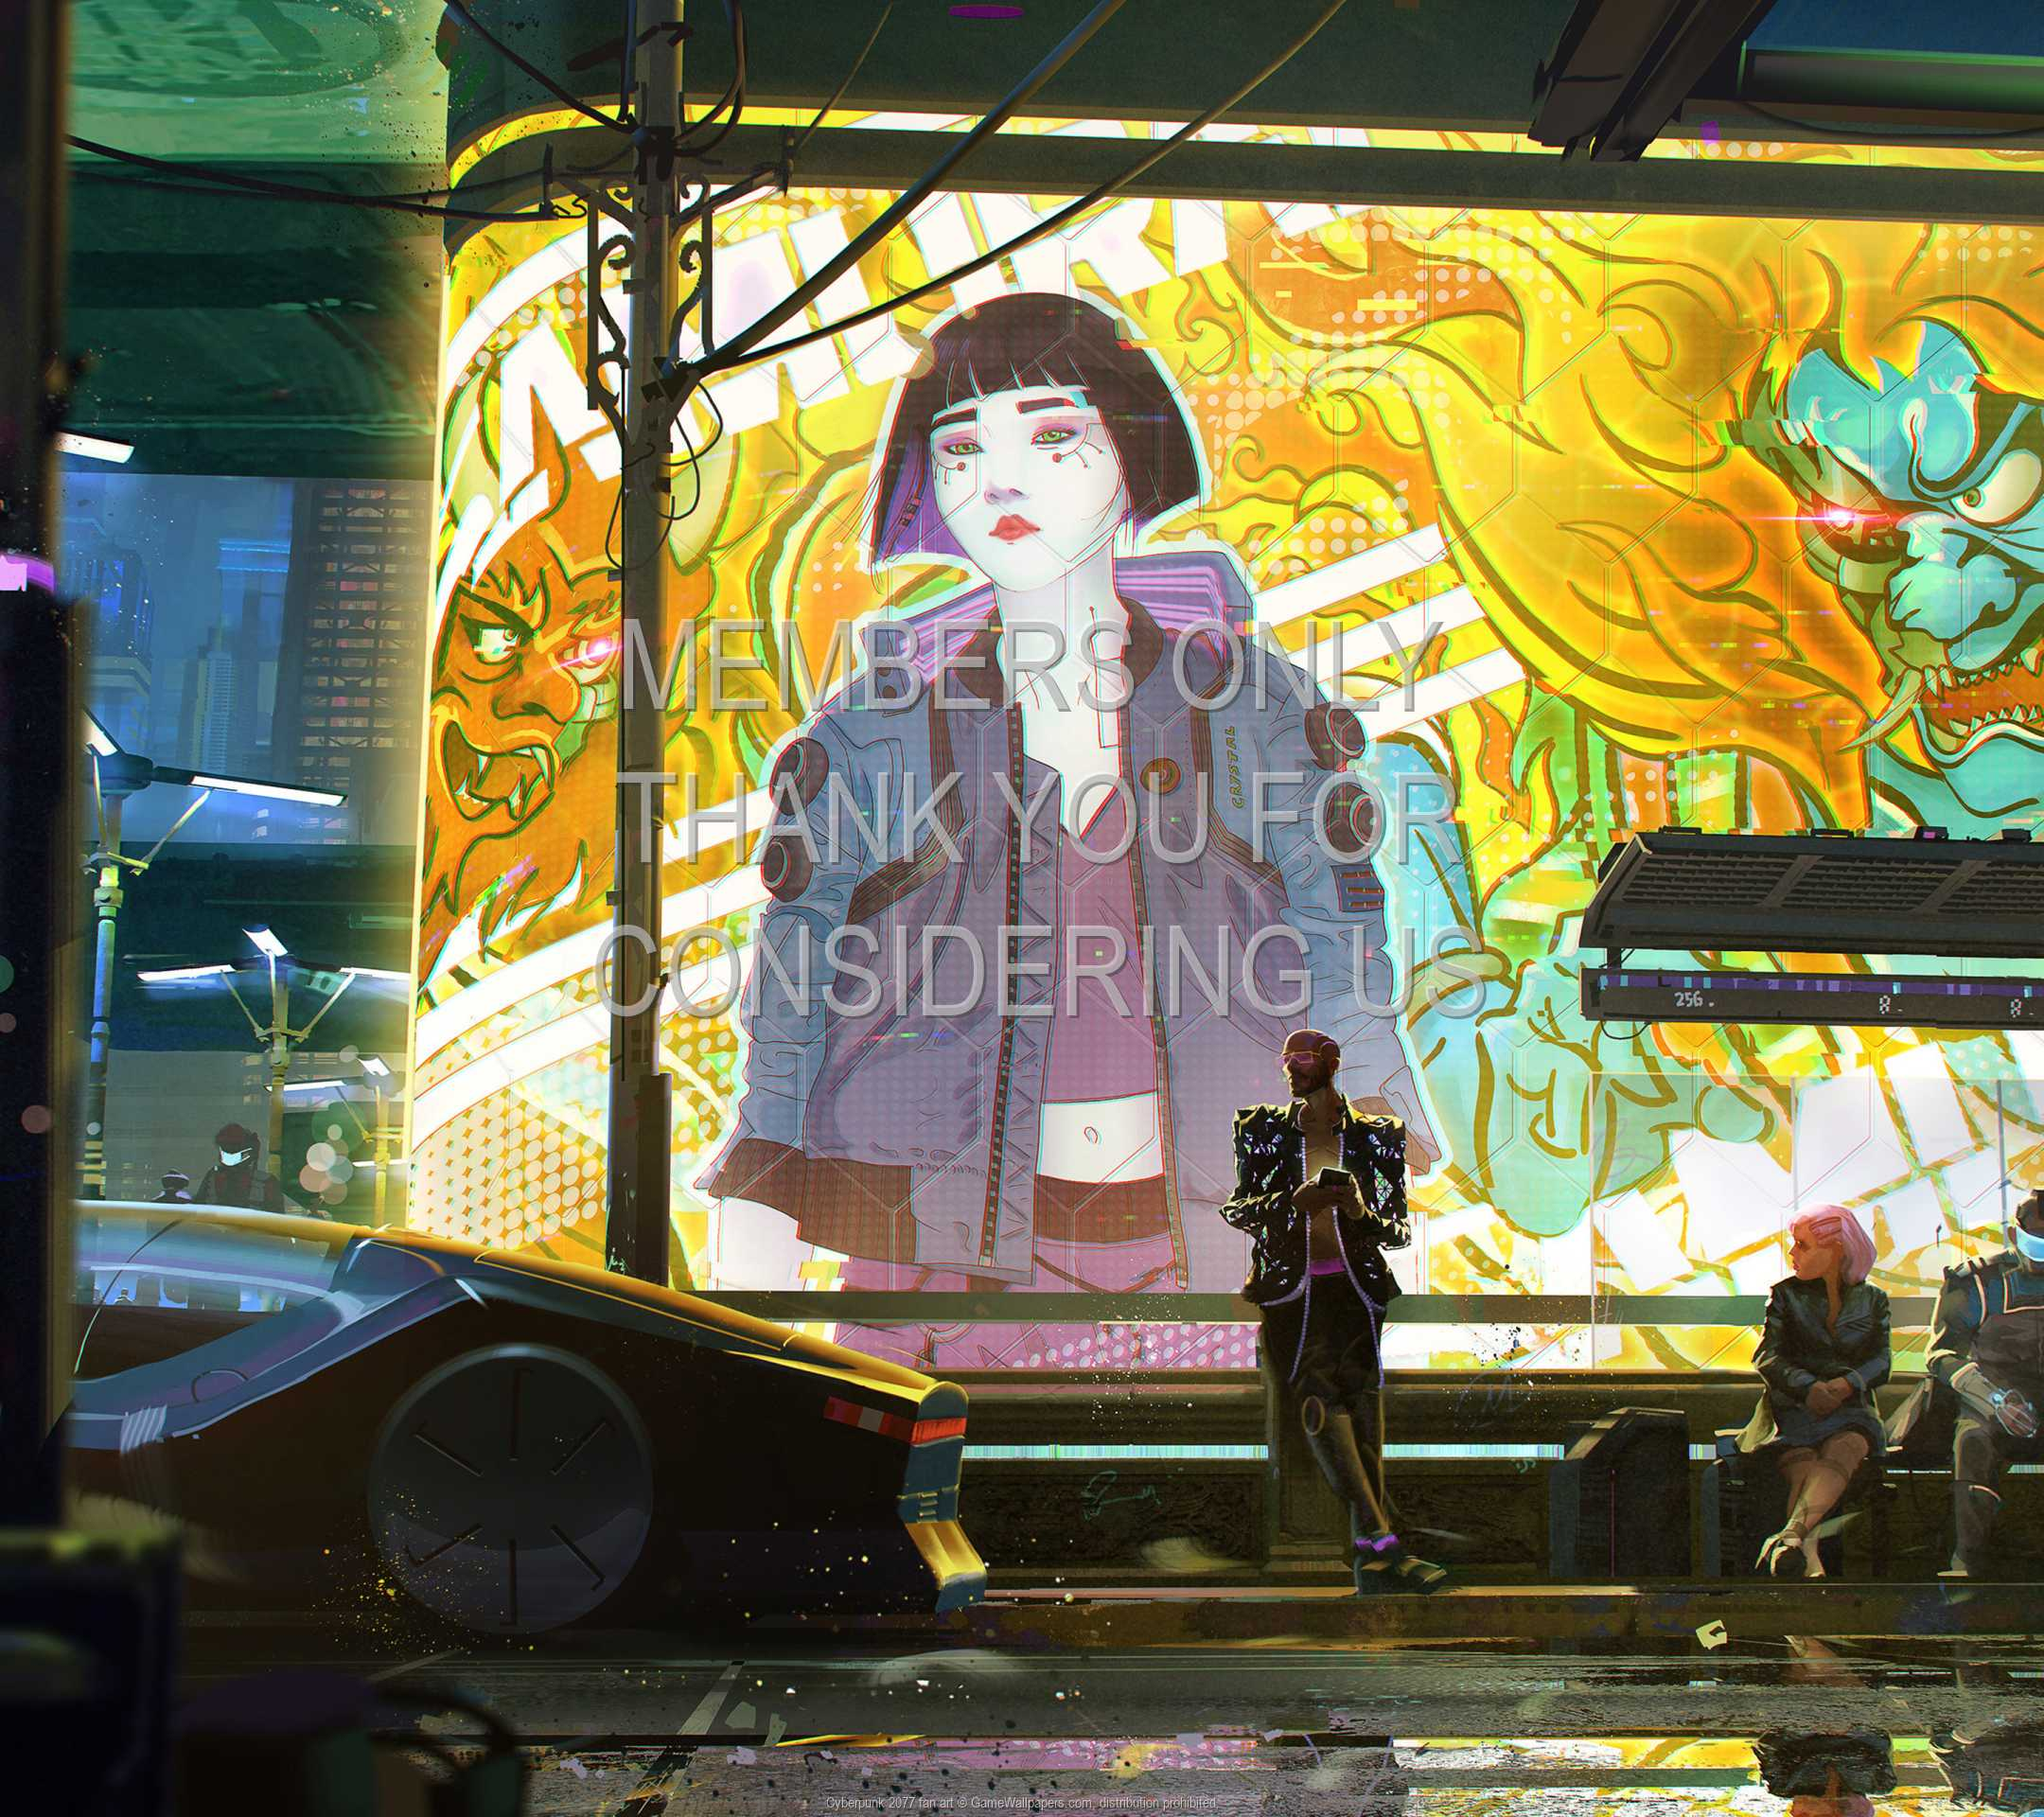 Cyberpunk 2077 fan art 1080p Horizontal Móvil fondo de escritorio 05